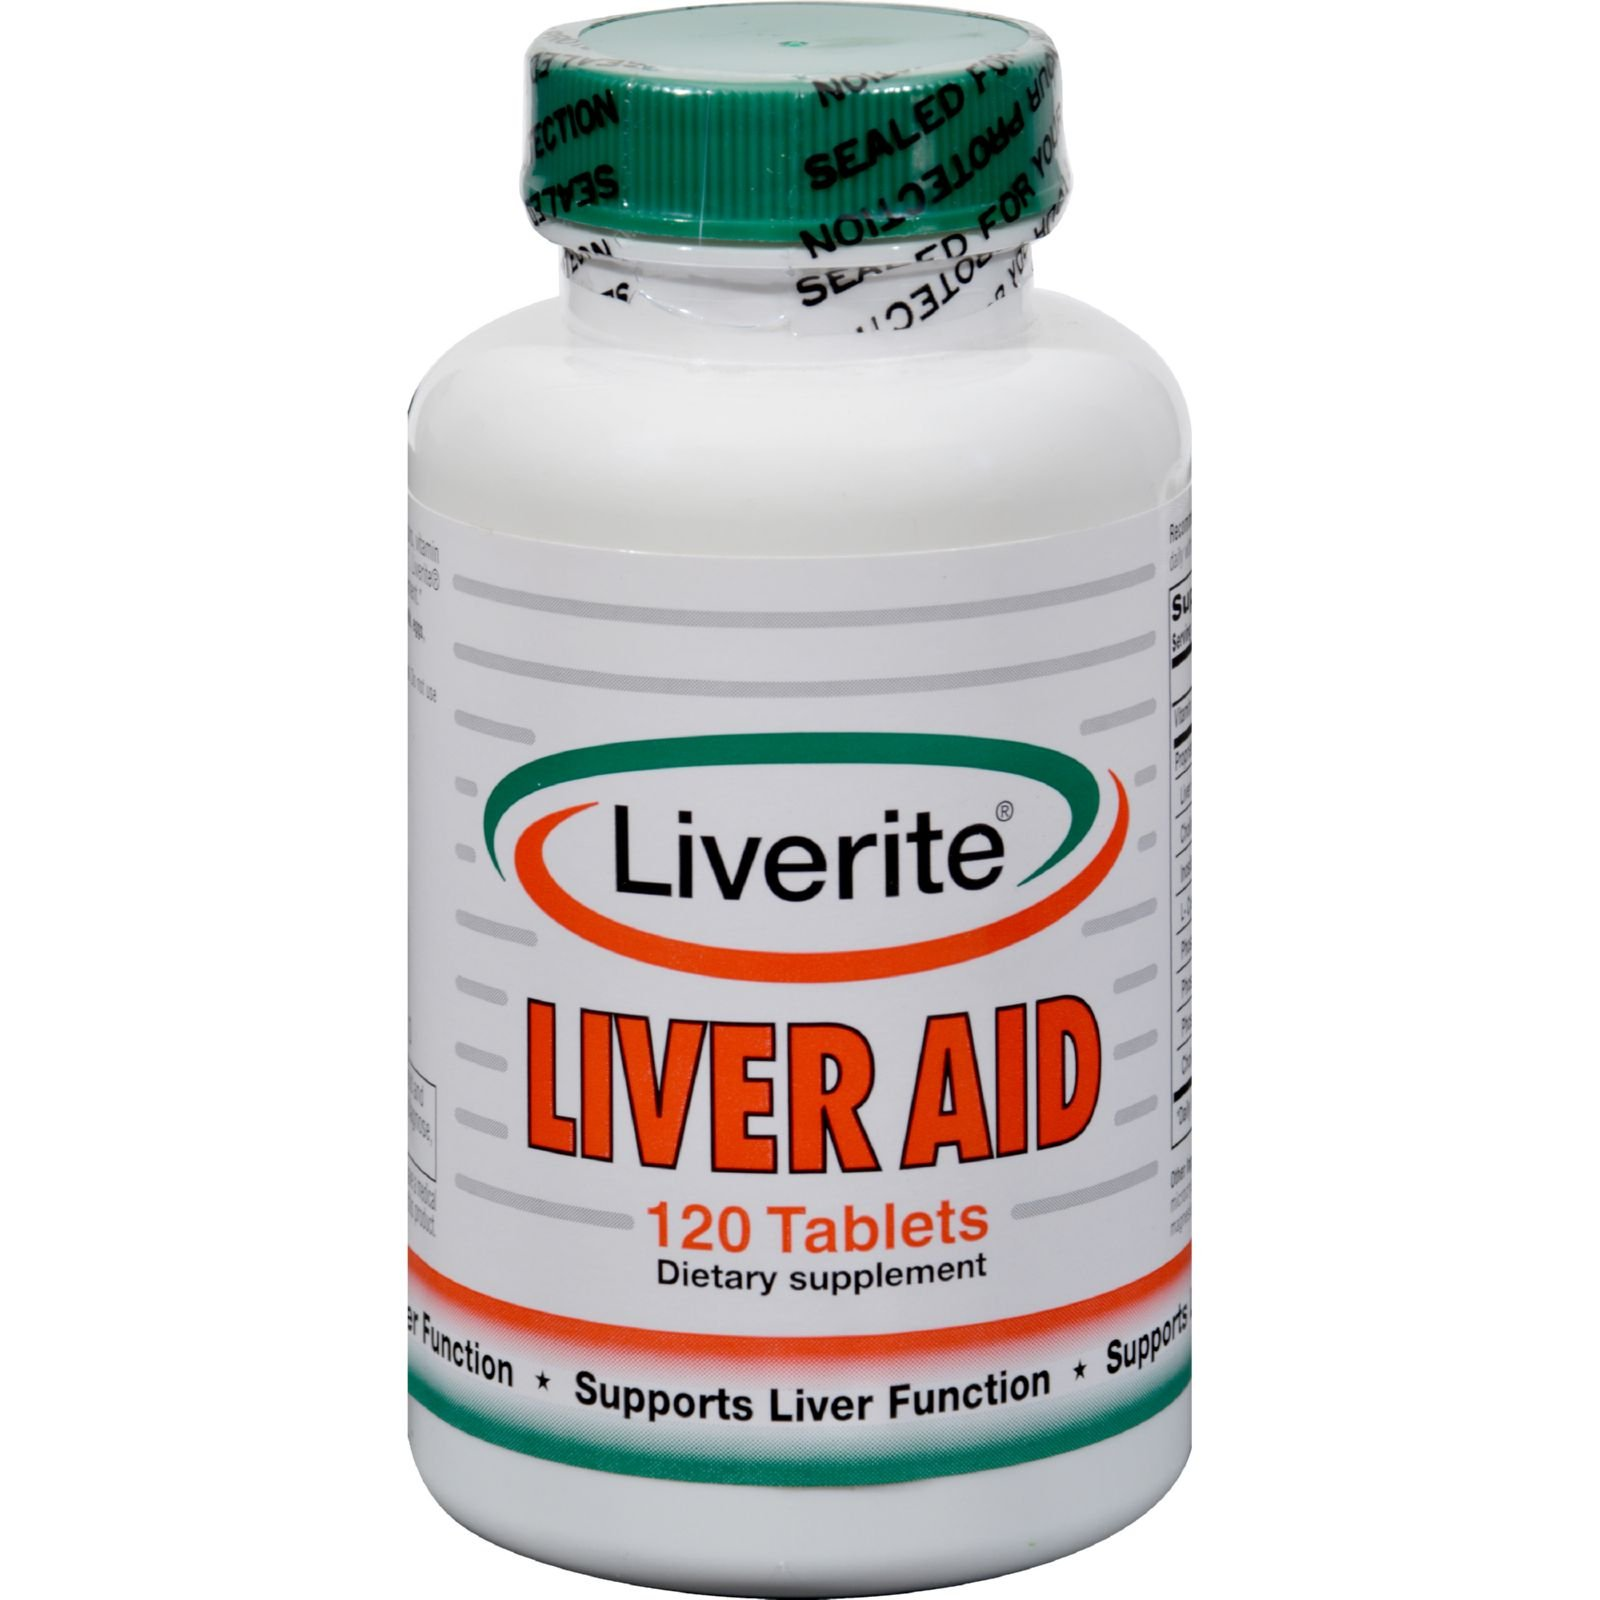 Liverite Liveraid - Supports Liver Function - 120 Tablets (Pack of 2)